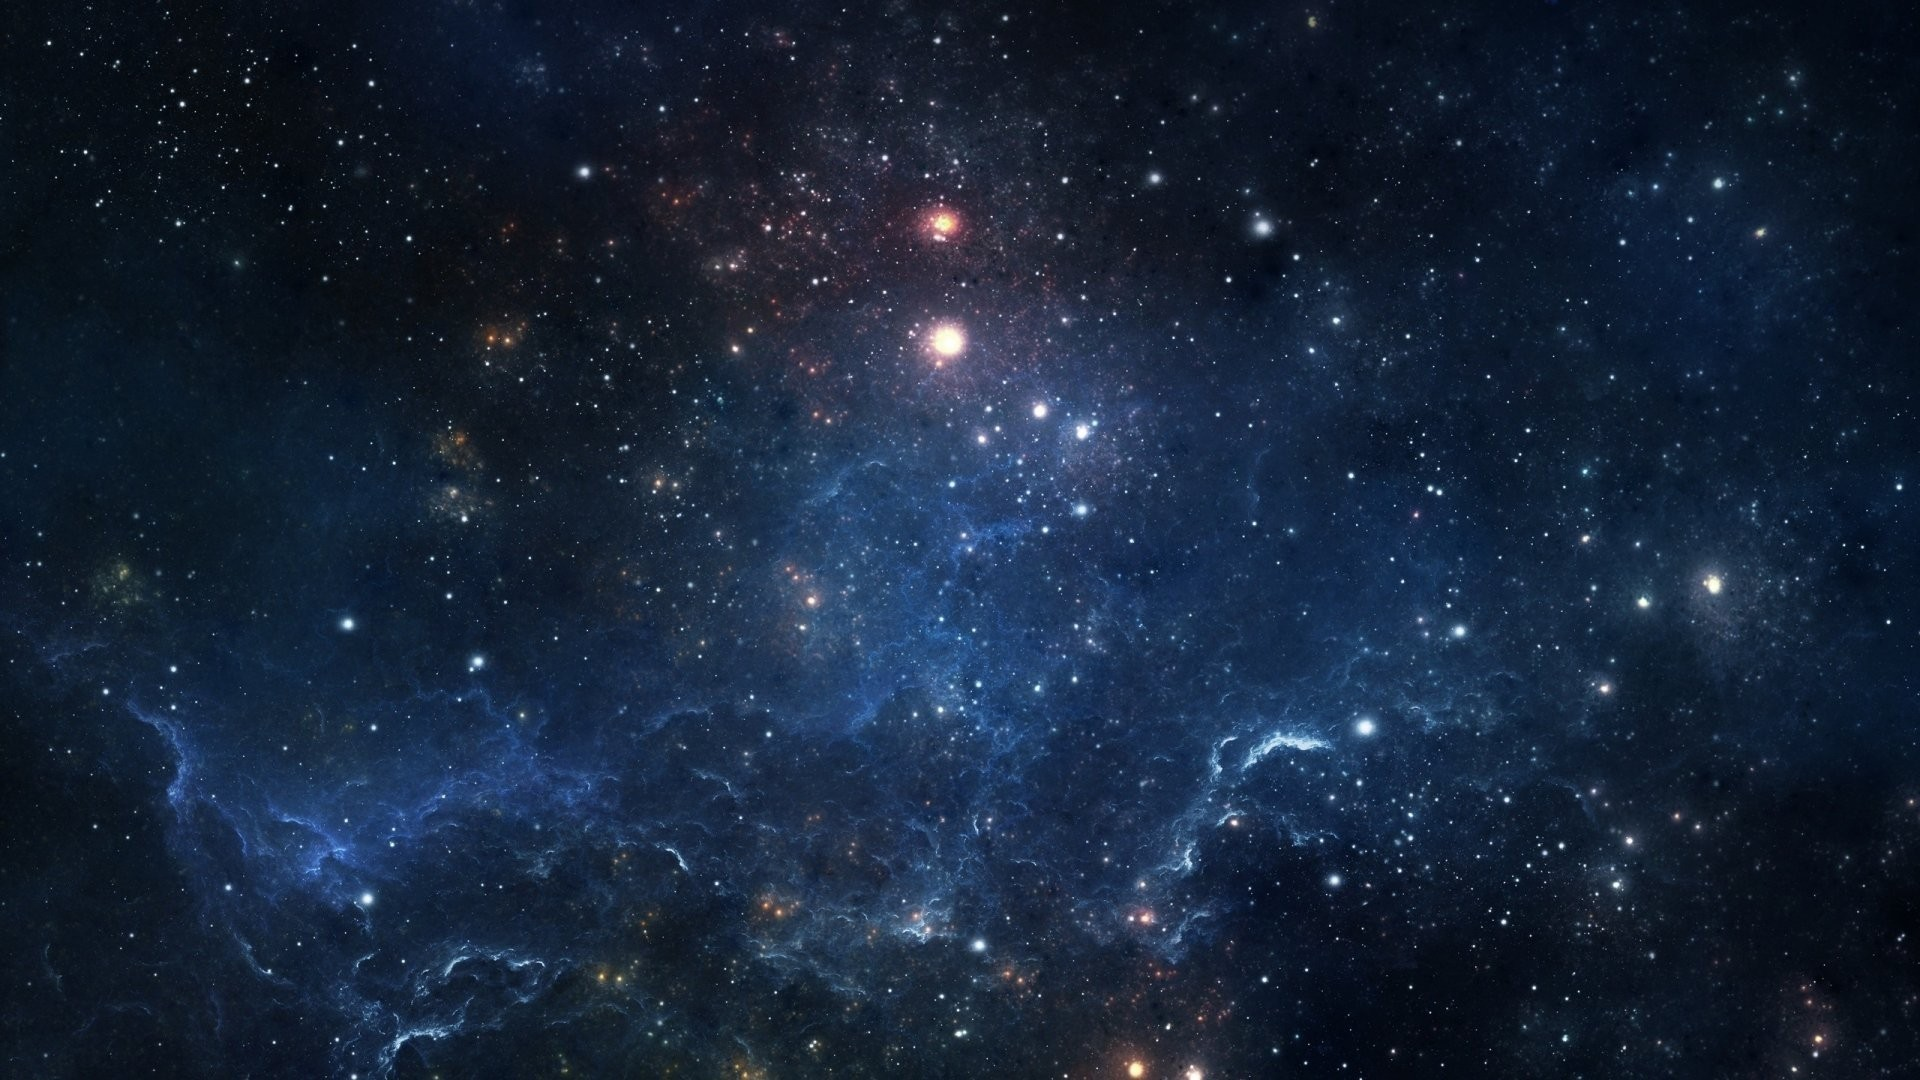 Space Free Wallpaper